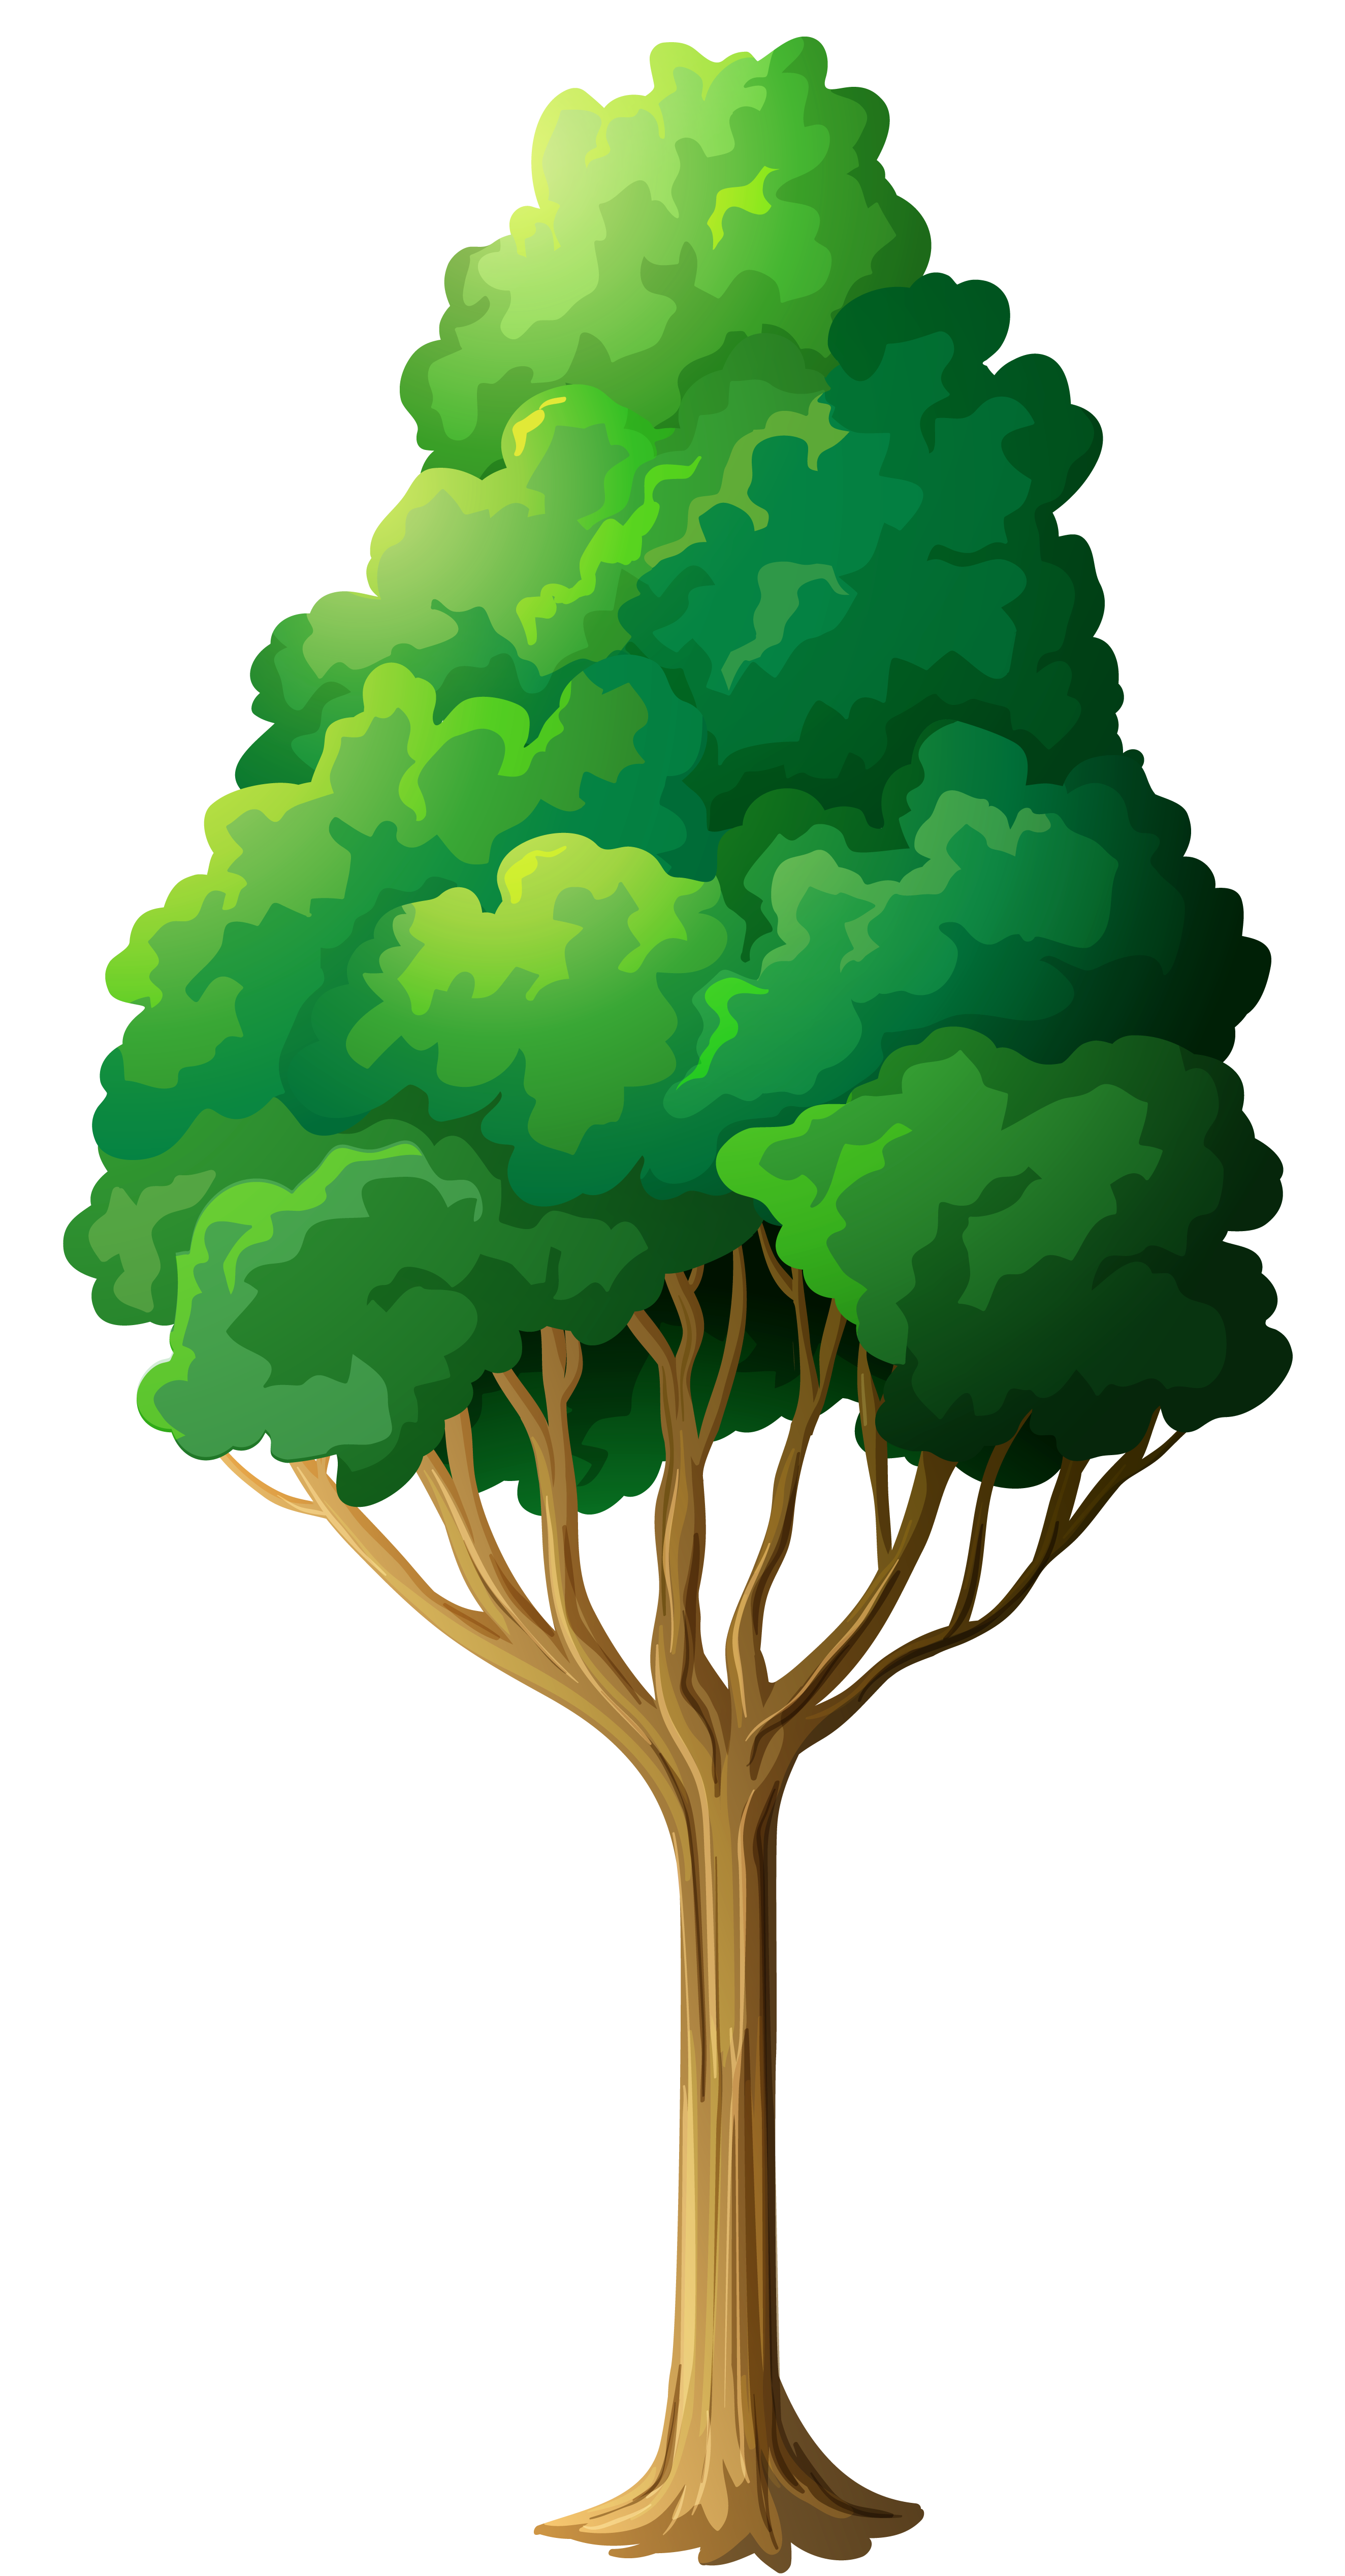 Green Tree Png Clipart Gallery Yopriceville High Quality Images And Transparent Png Free Clipart Tree Art Clip Art Tree Clipart